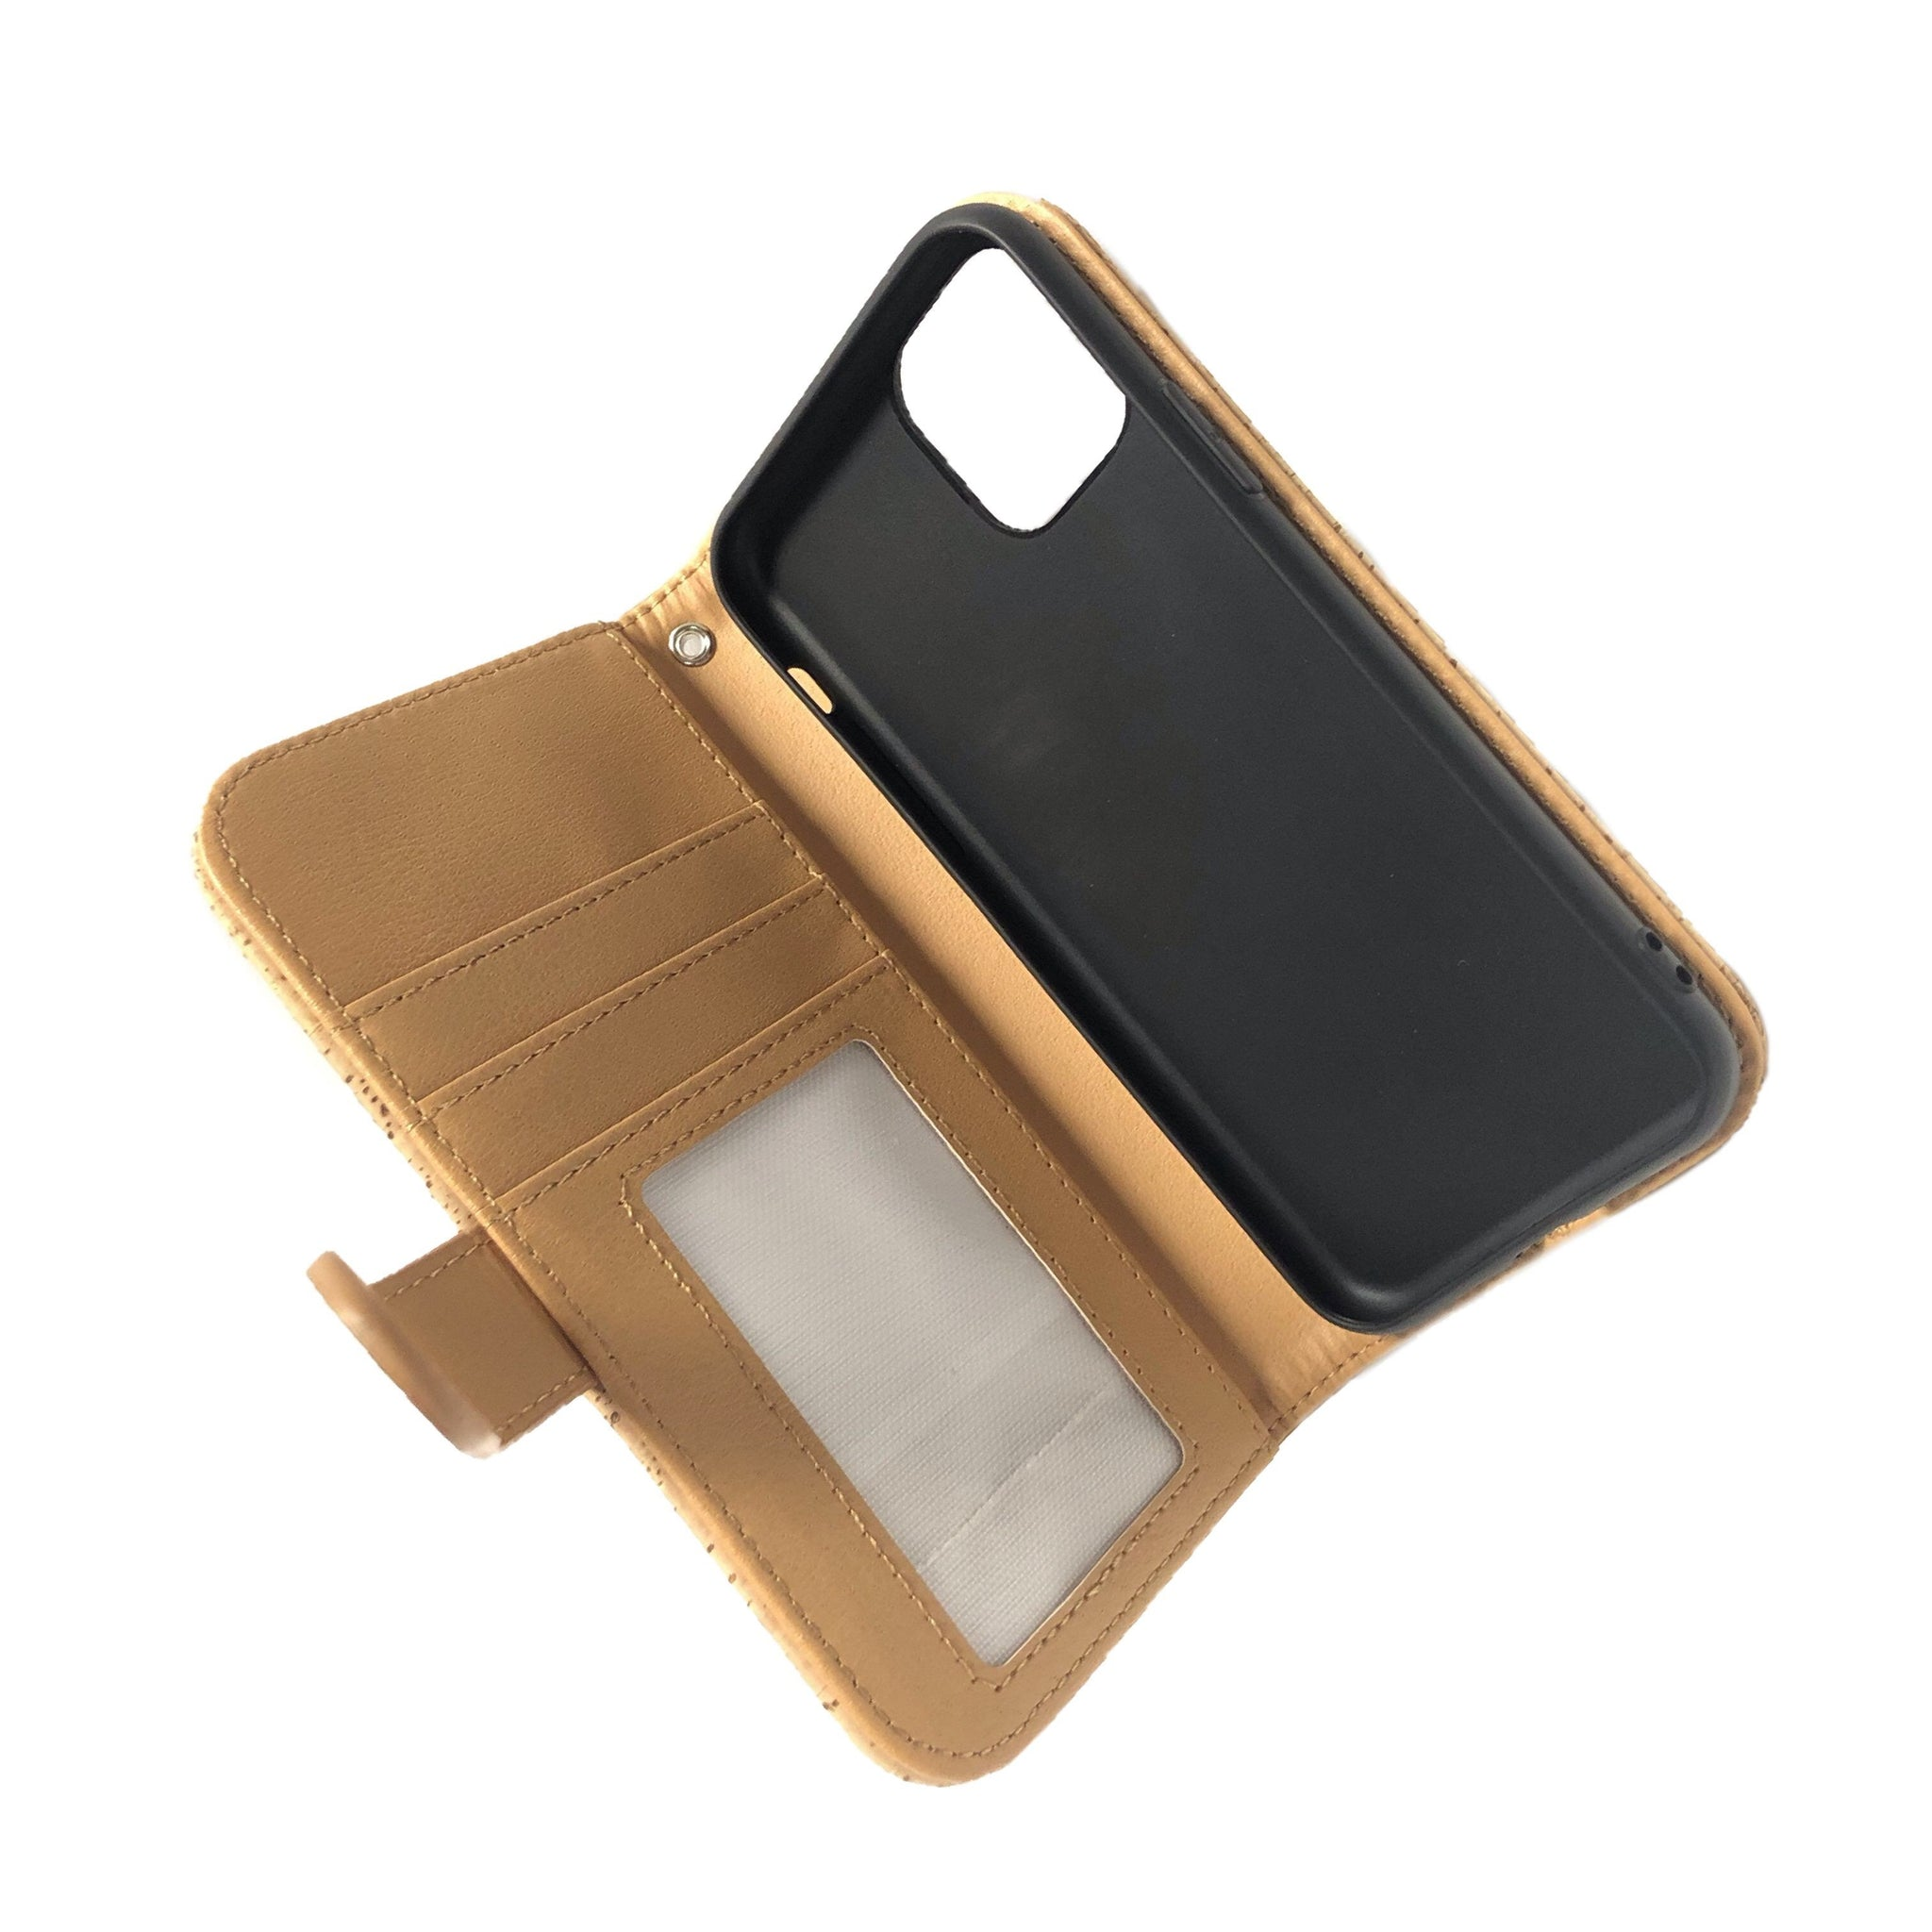 11 PRO iPhone wallet case